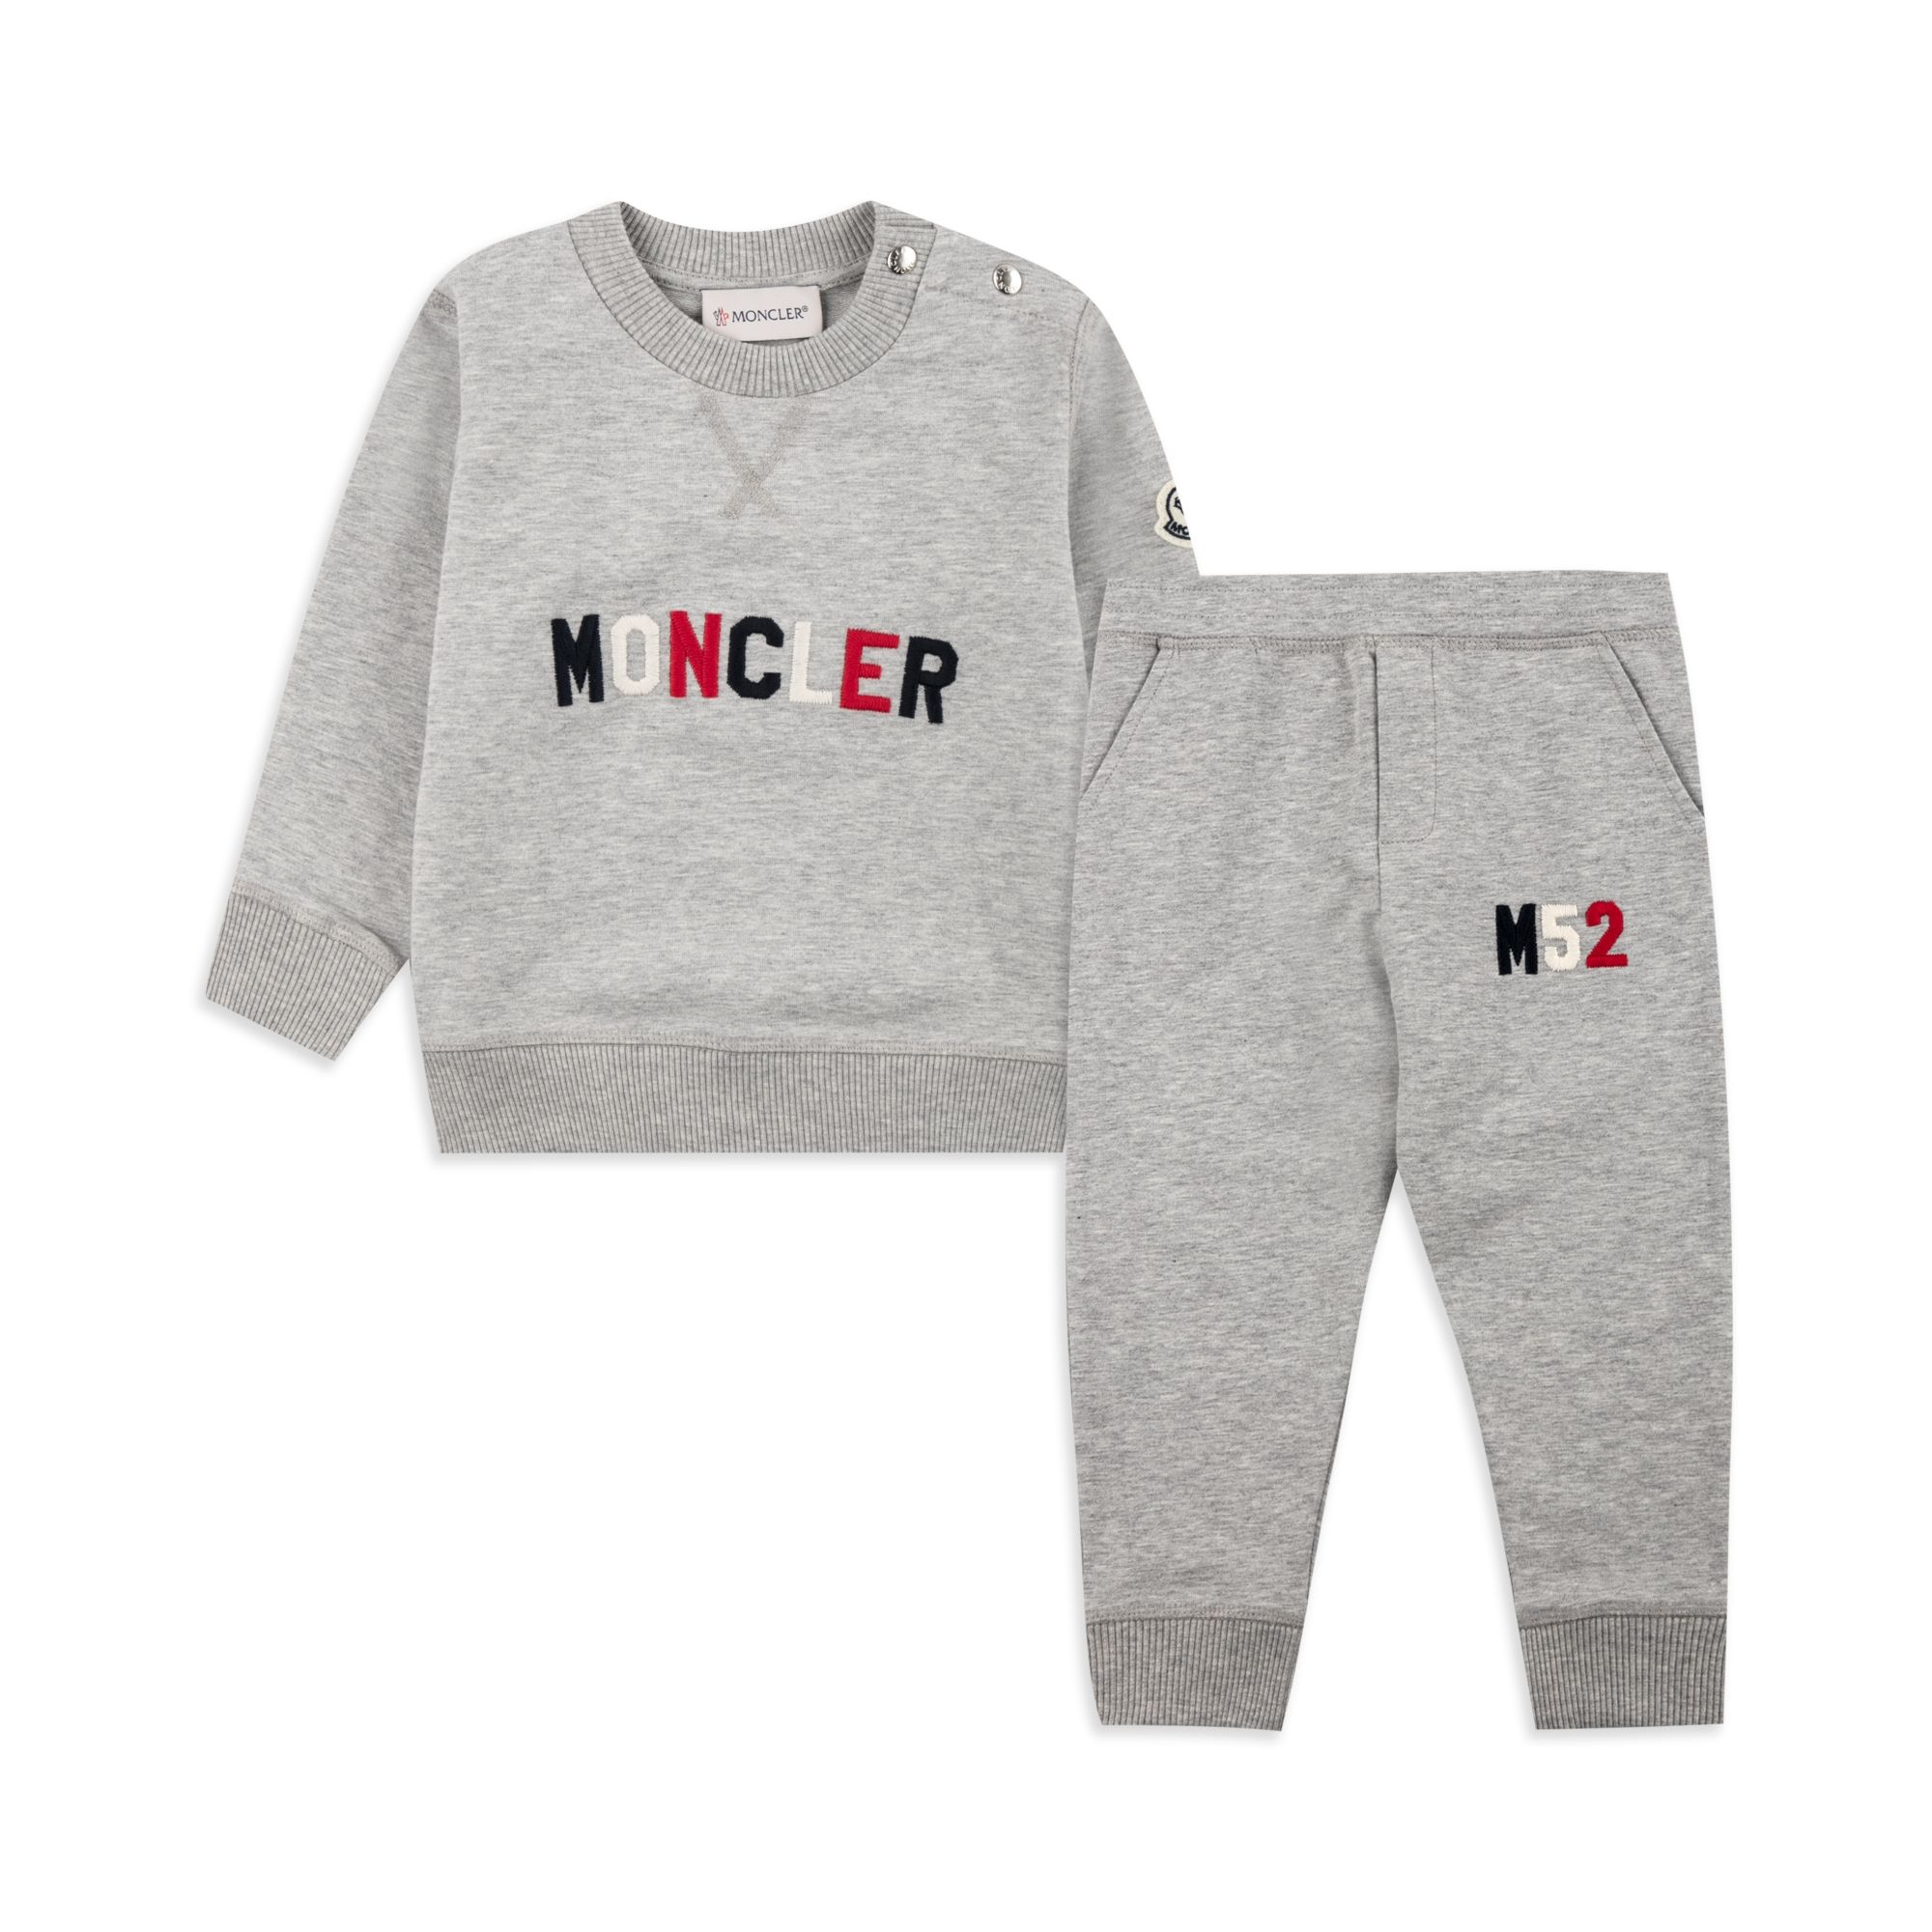 MONCLER Baby Boys Embroidered Logo Tracksuit - Grey Baby boys tracksuit • Soft stretchy cotton •